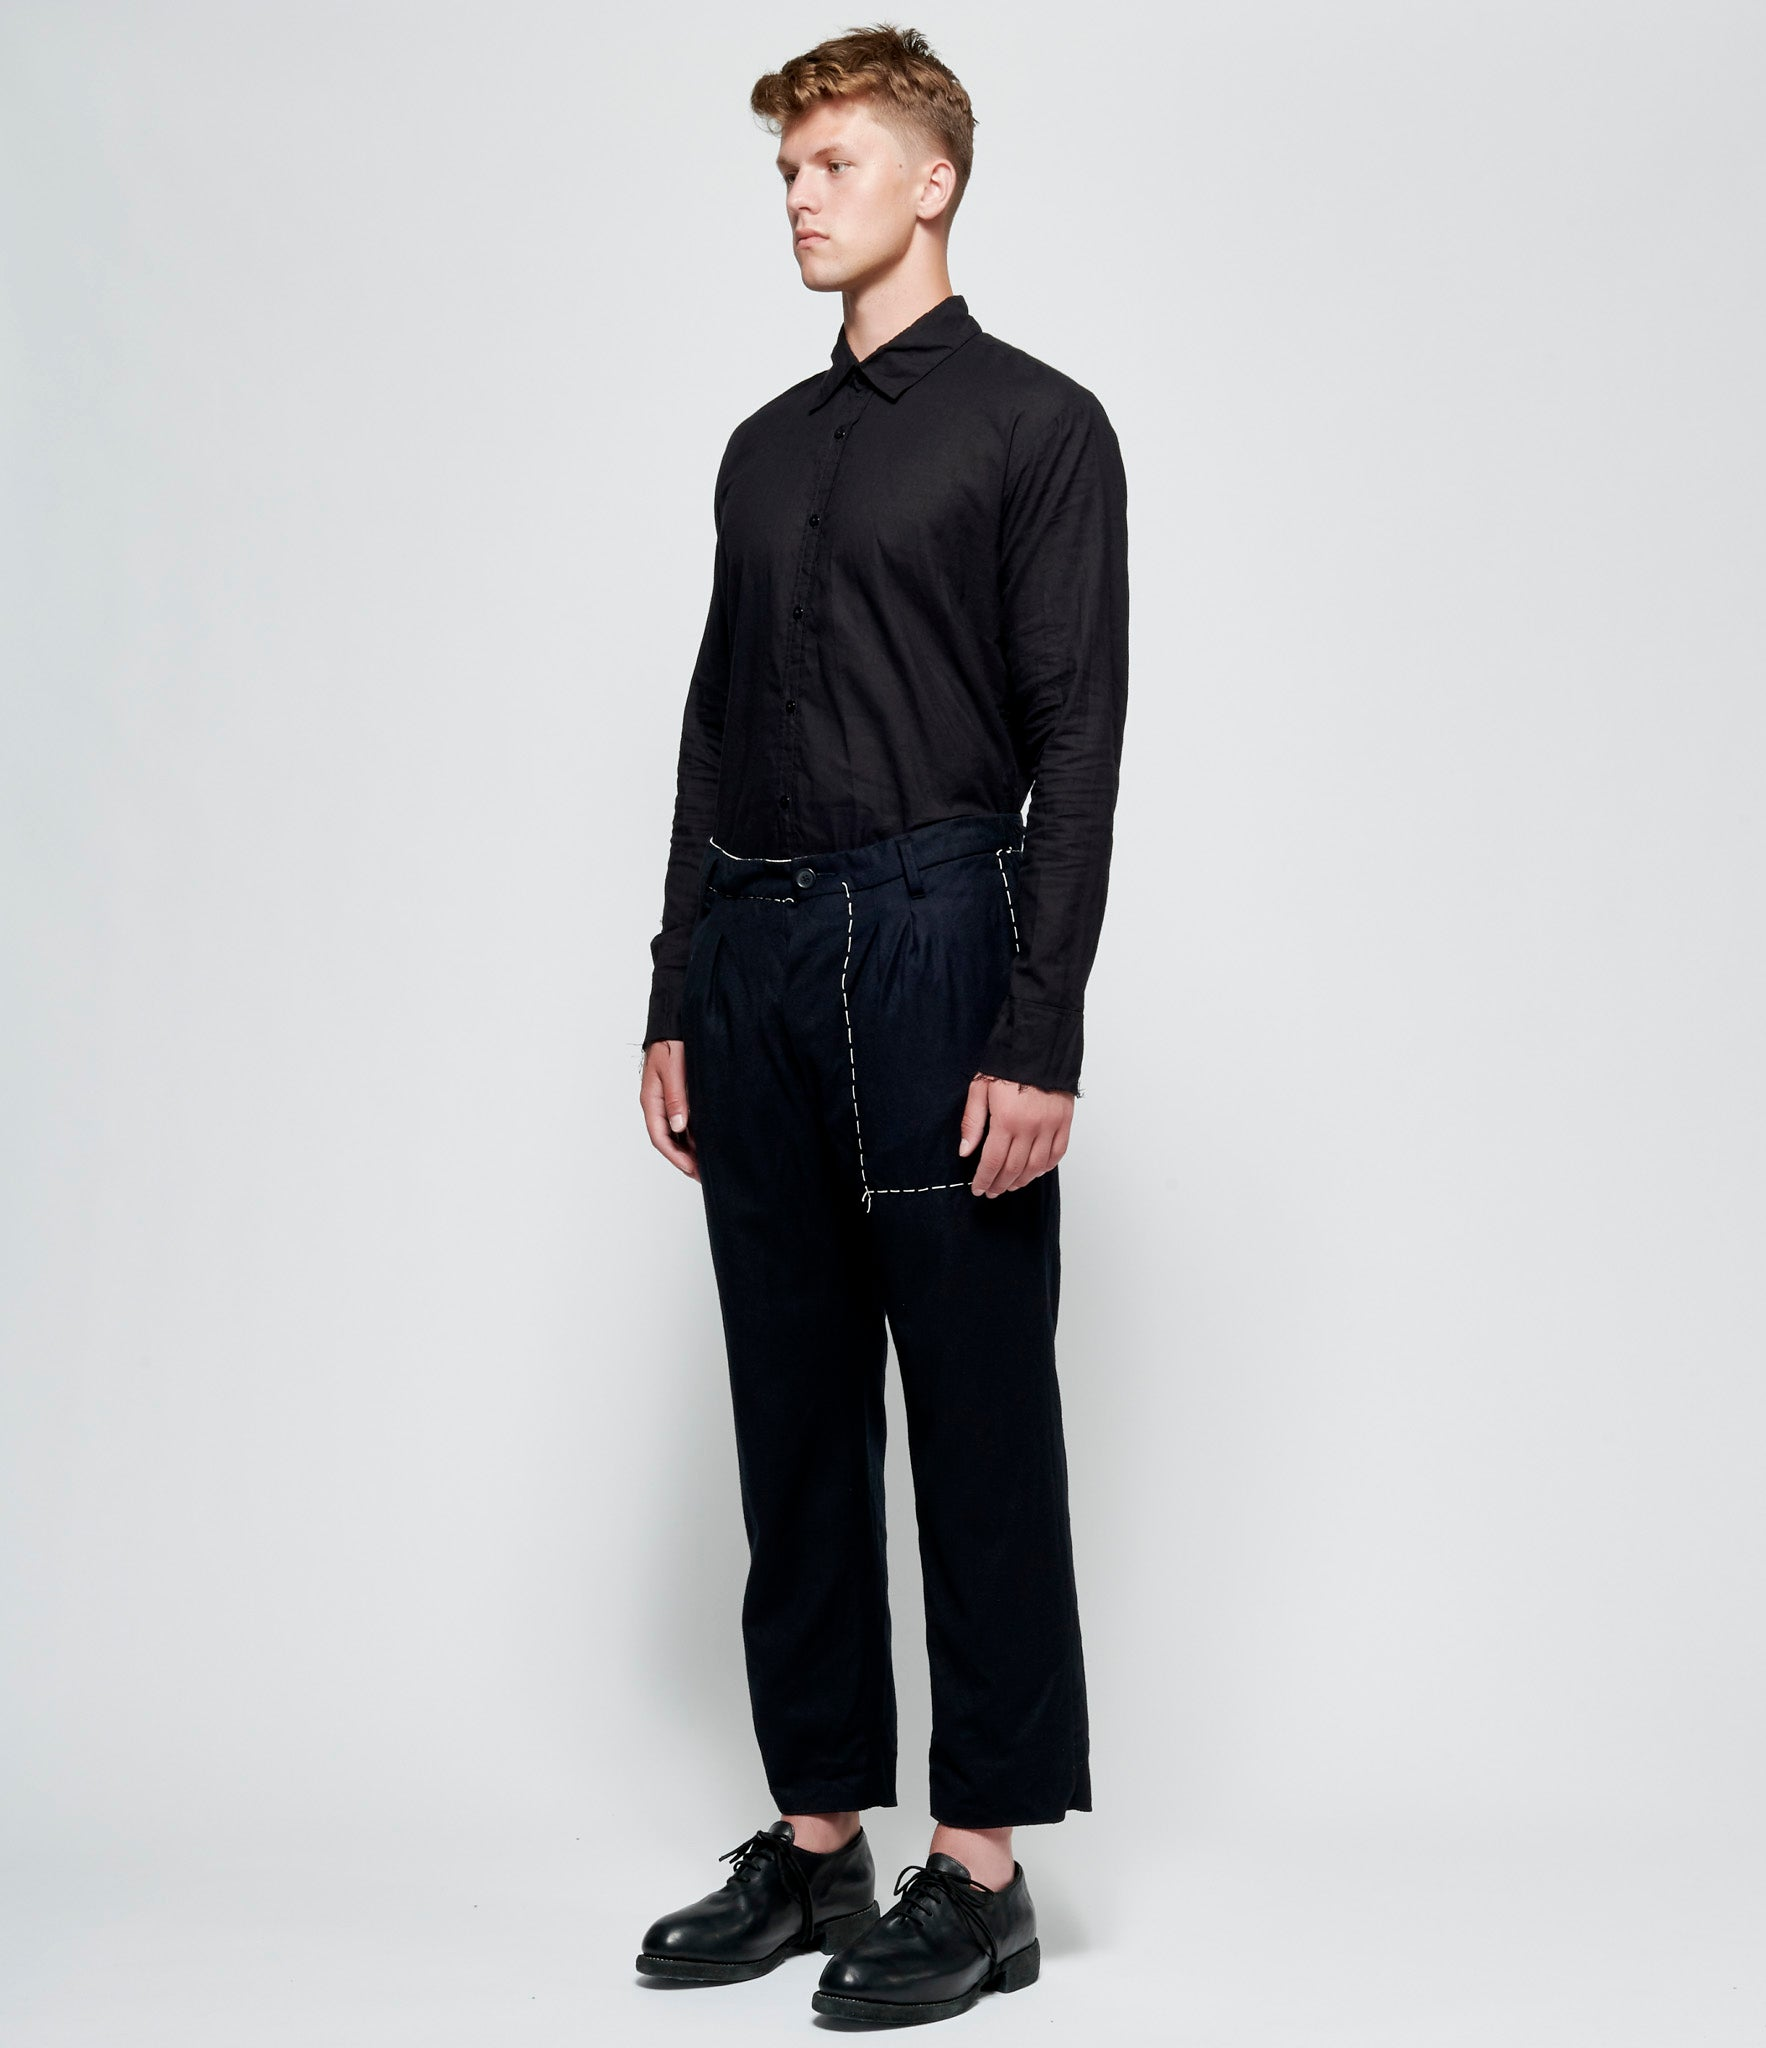 Elena Dawson Black Wool Cashmere Crop Stitch Baggy Trousers